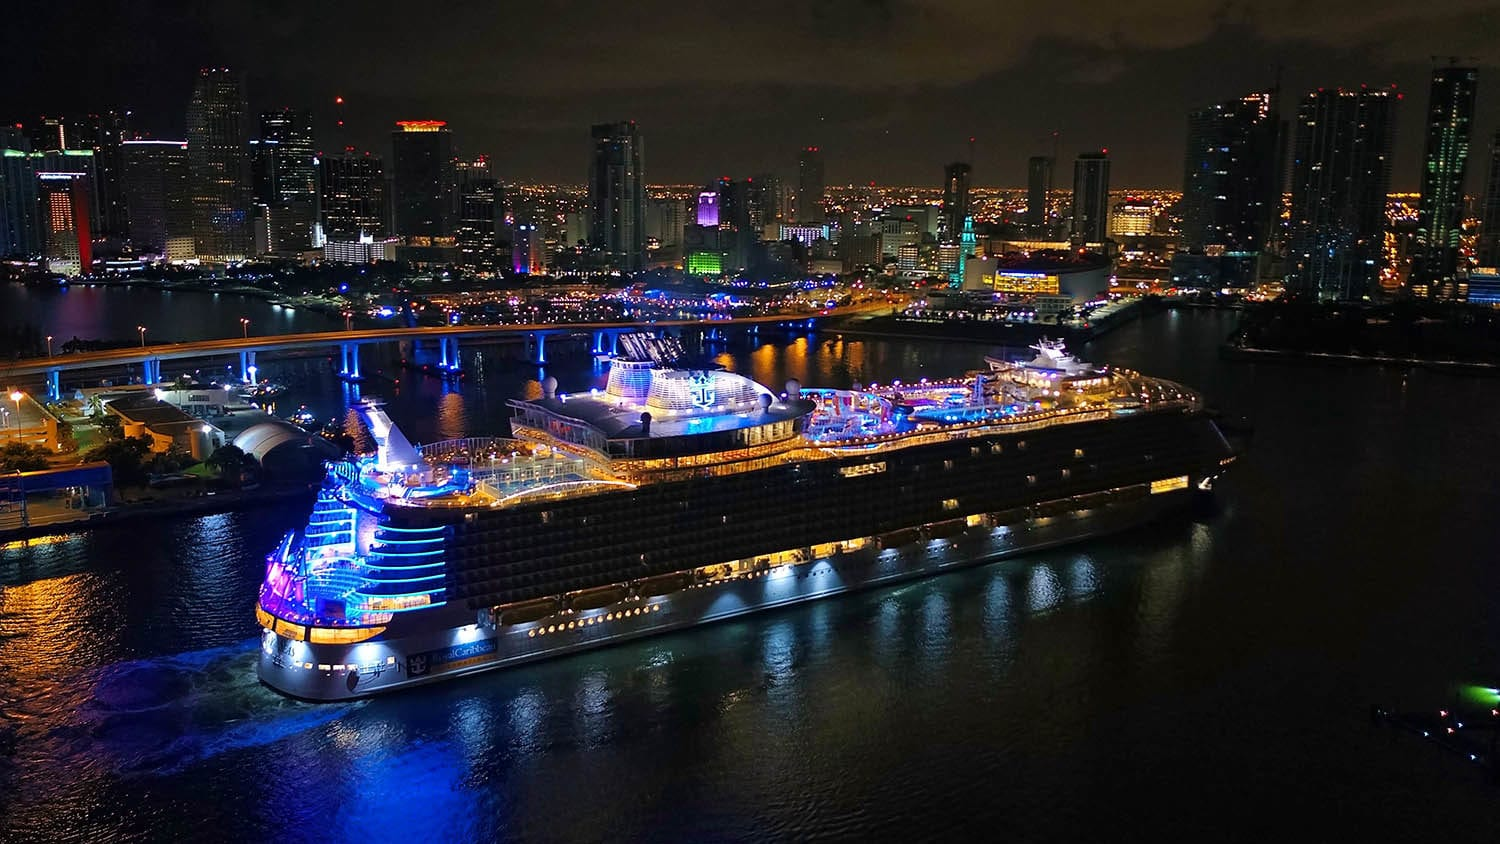 World S Largest Cruise Ship Arrives In Her Homeport Of Miami